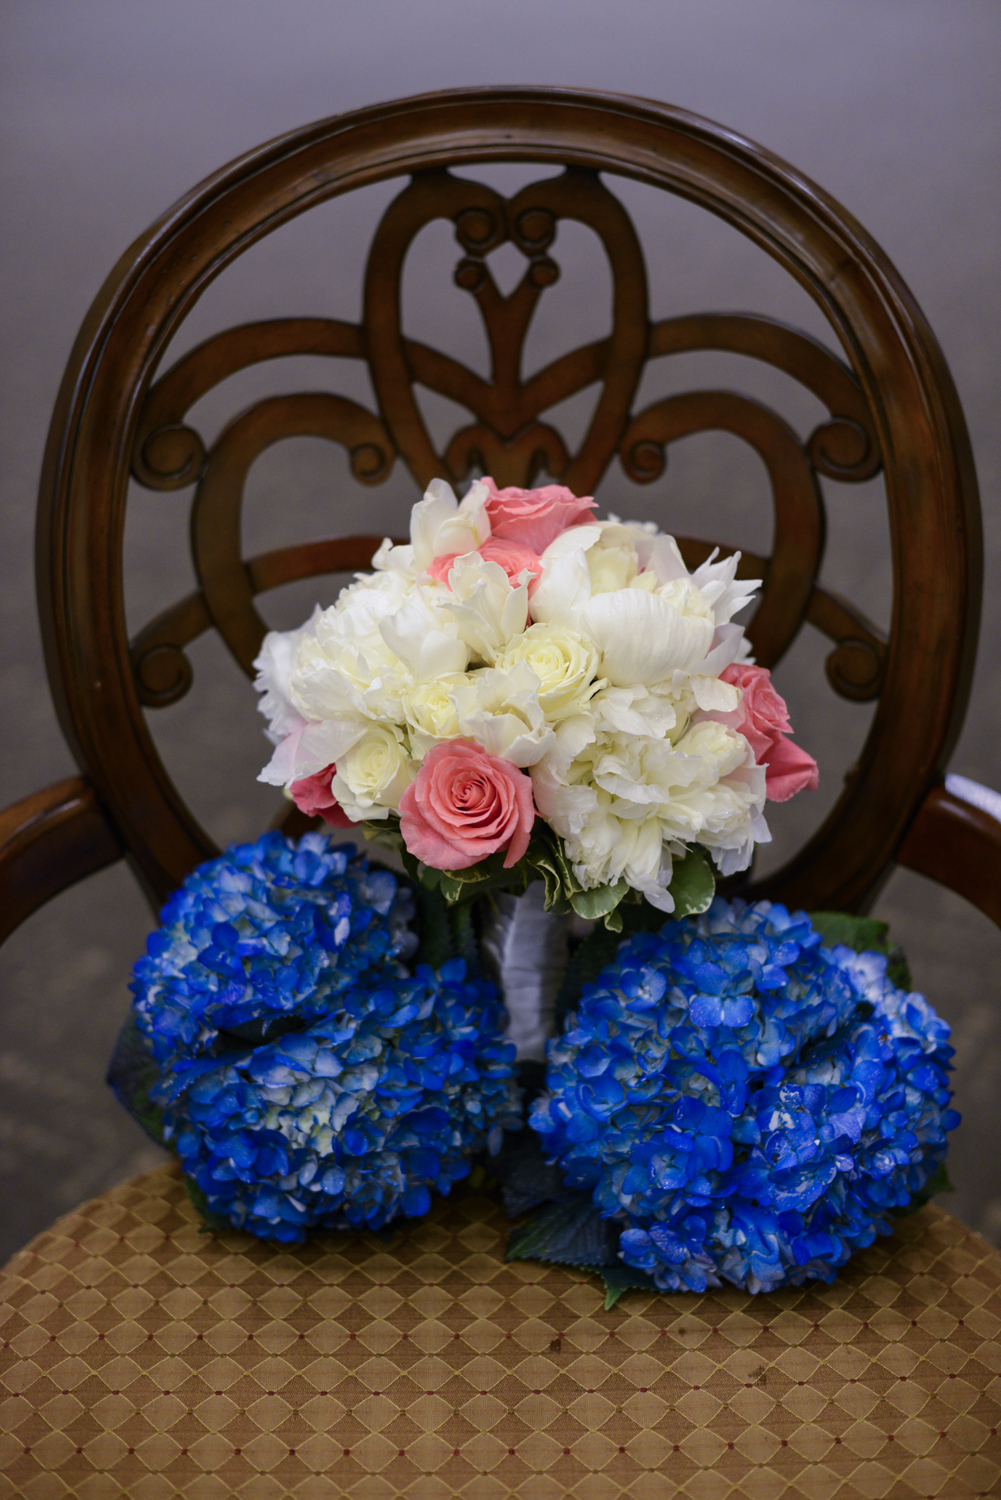 White rose bridal bouquet and blue hydrangea bridesmaids bouquet